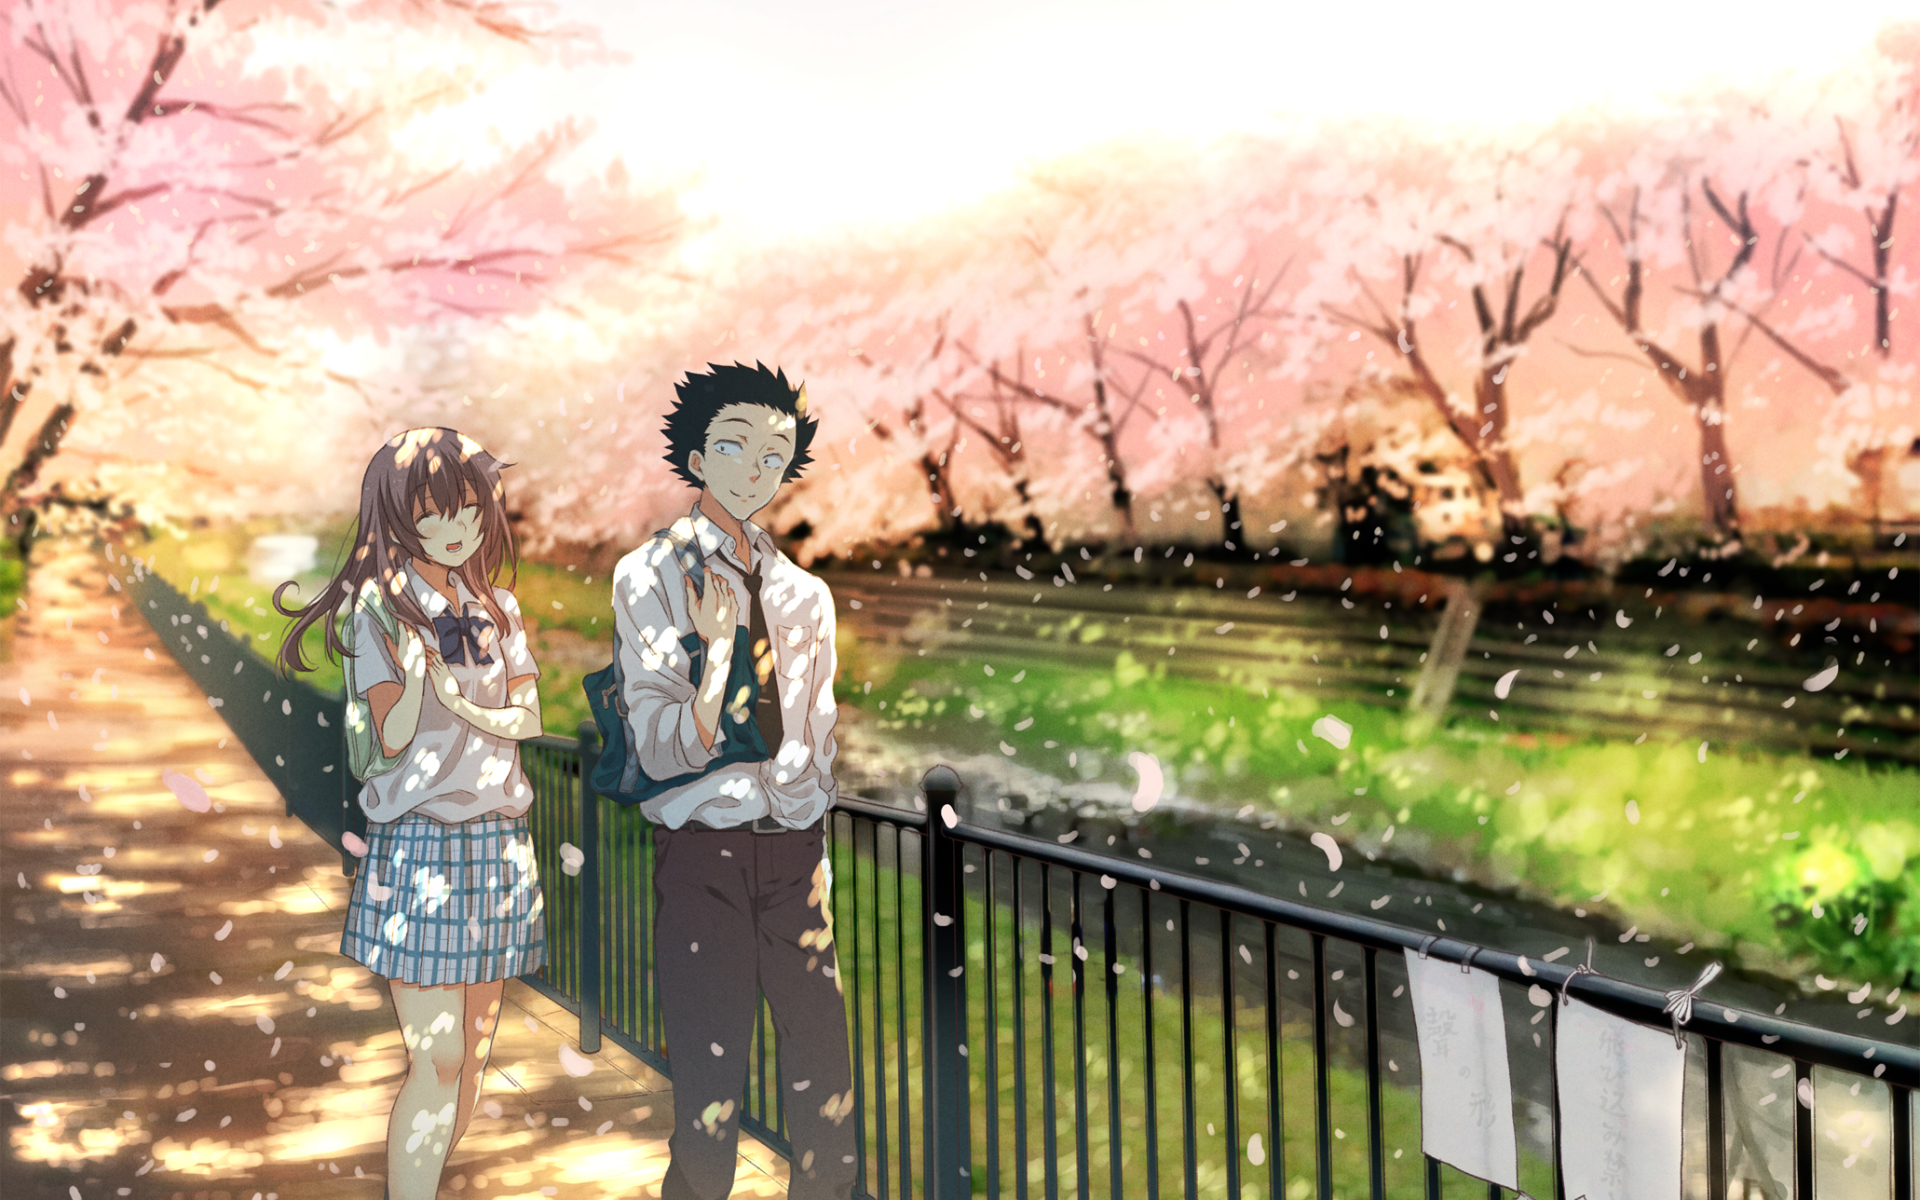 Koe No Katachi Images Koe No Katachi Wallpaper Hd Wallpaper And